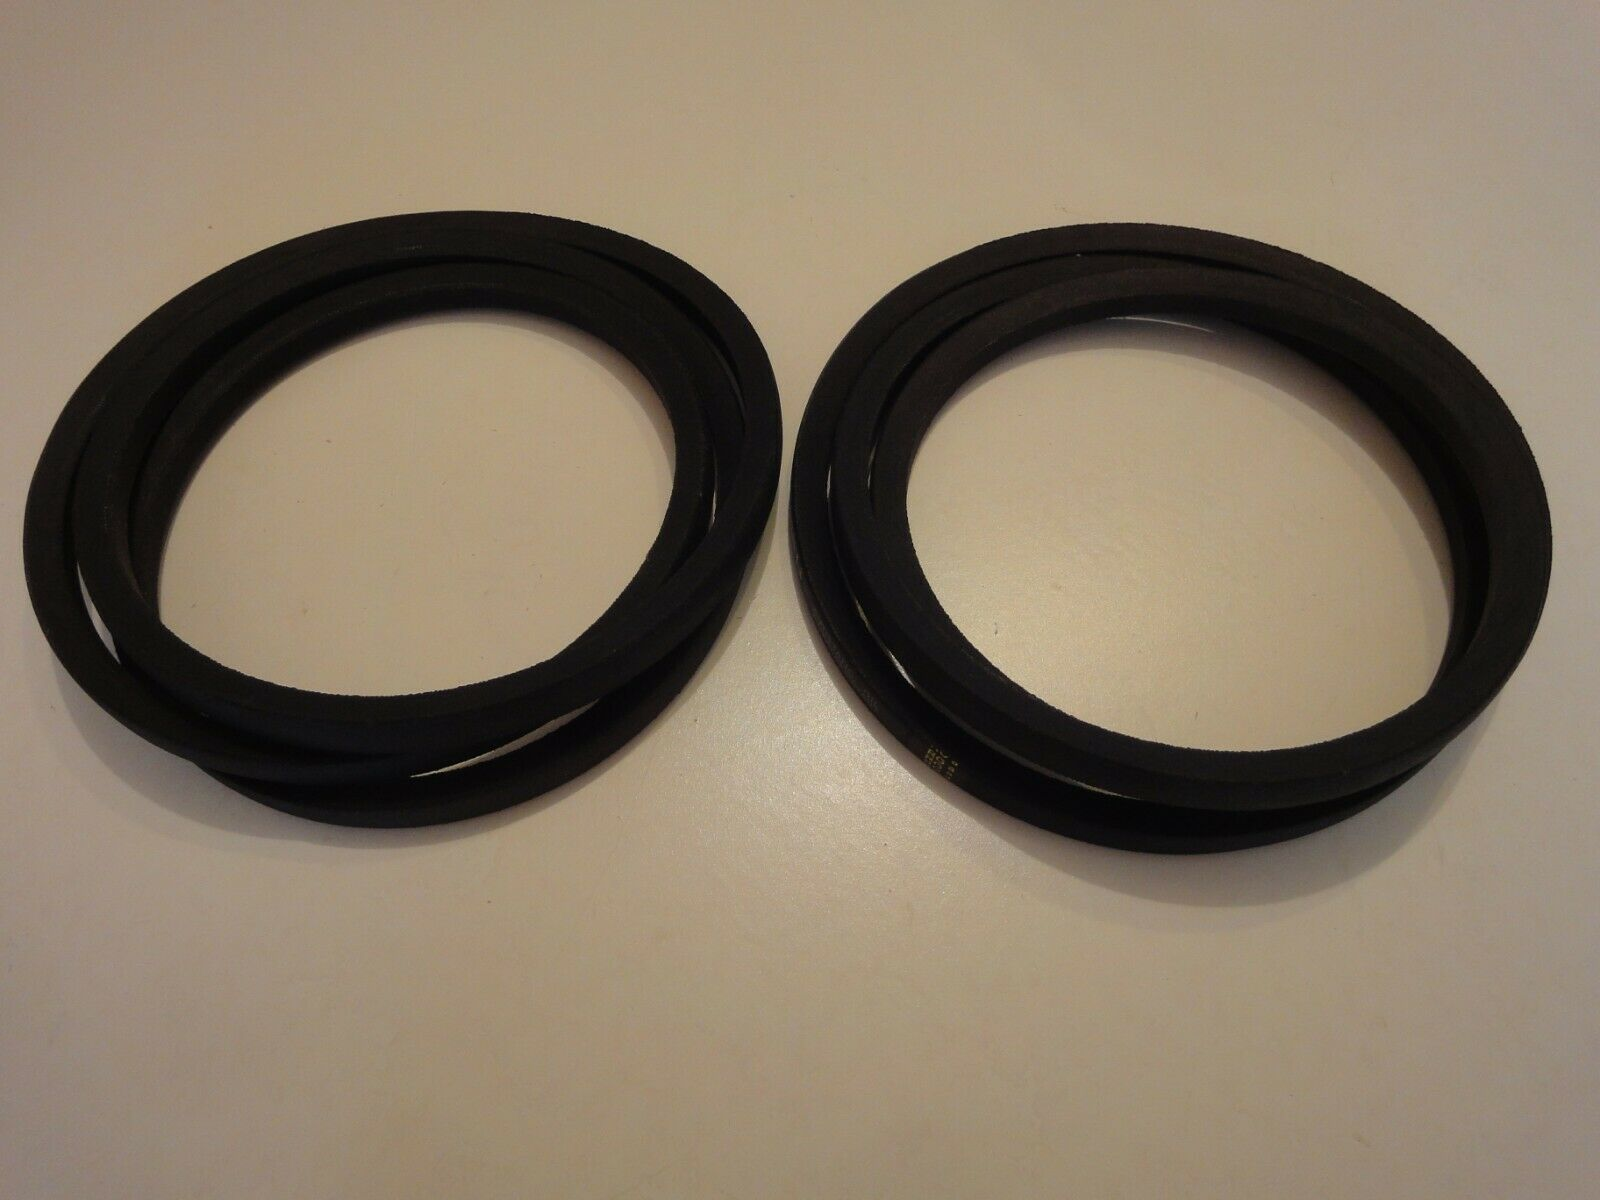 FORST ST6 WODDCHIPPER PAIR OF FLYWHEEL DRIVE BELTS